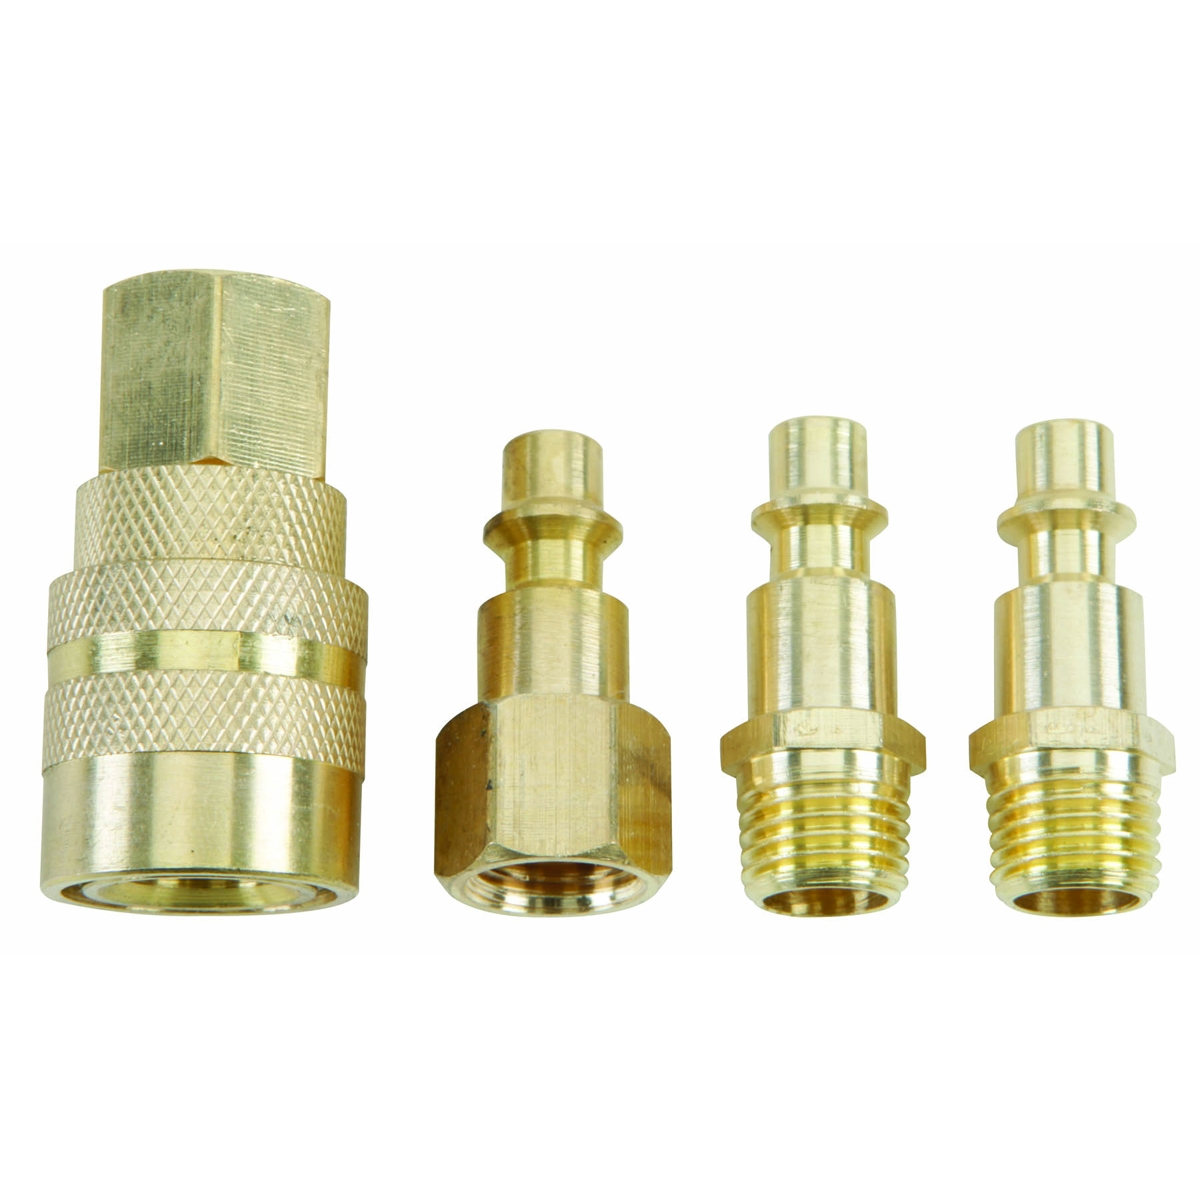 Brass Industrial Quick Coupler Set 4 Pc